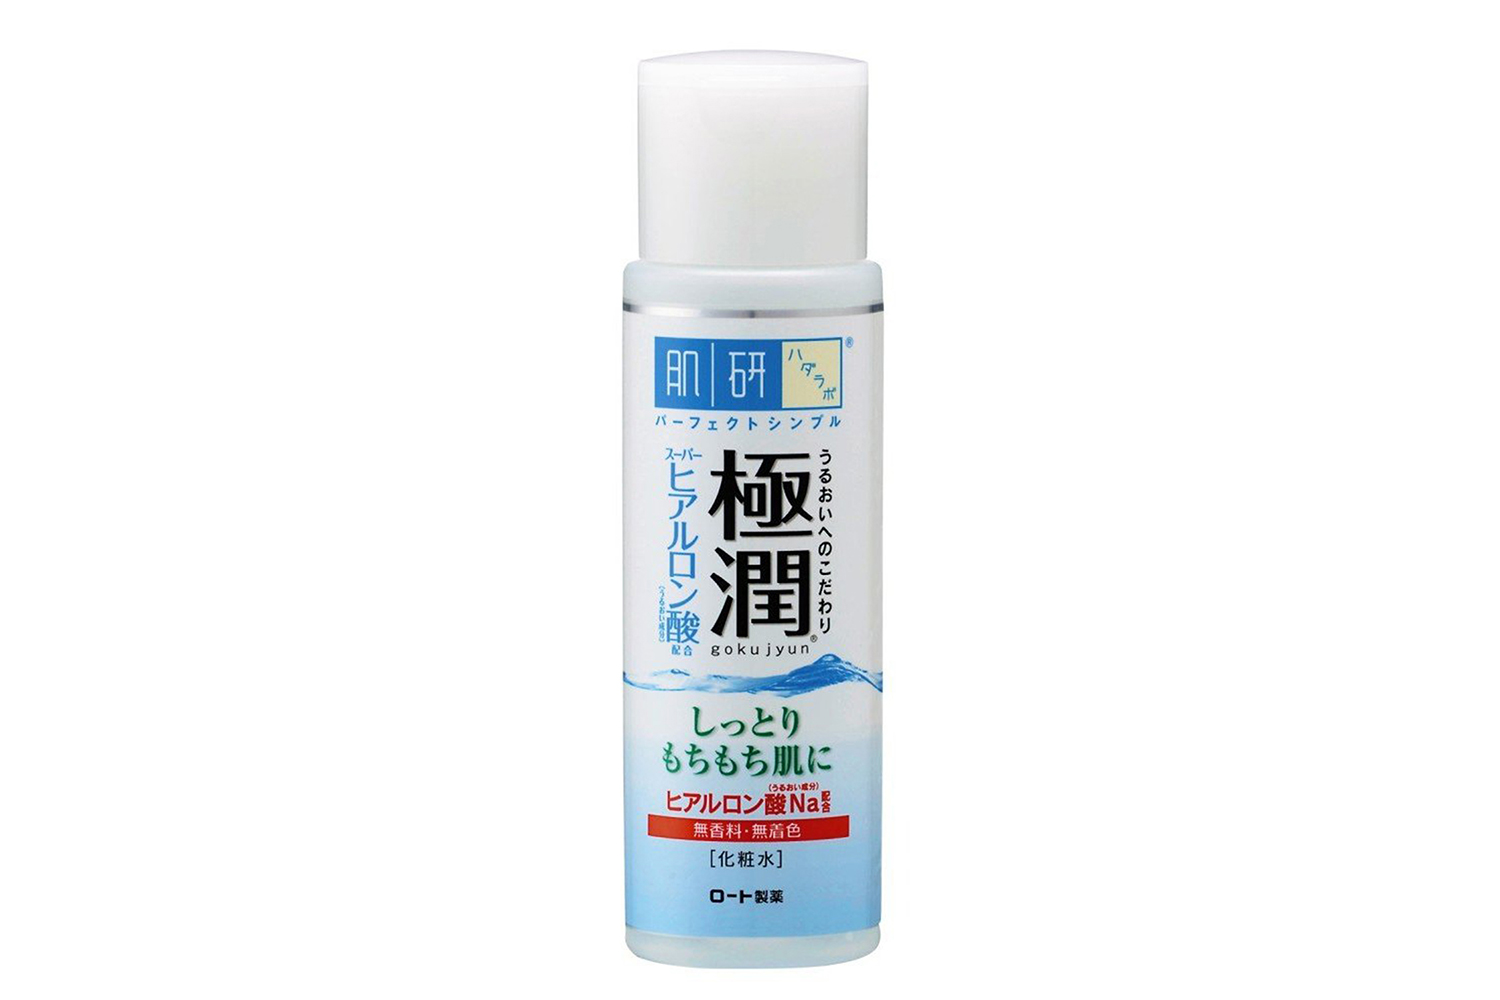 This Japanese Lotion Has a Cult Following Because It Makes Your Skin Look 10 Years Younger